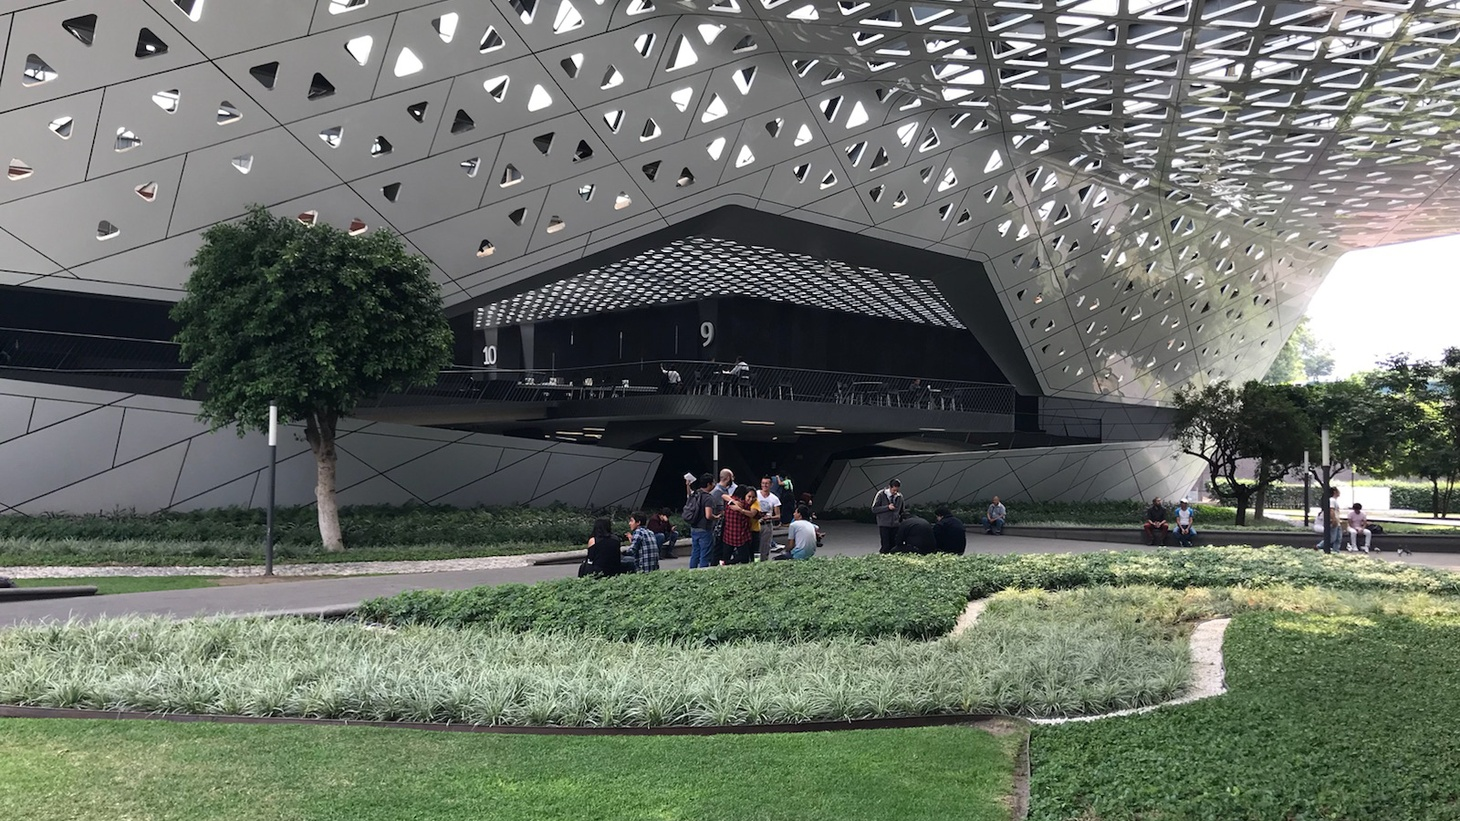 """President Trump may diss Mexico but designers and architects are flocking there. Now SCI-Arc has set up a satellite school in the capital and LA is learning from Mexico City. And, the buzz is starting for """"Crazy Rich Asians."""""""